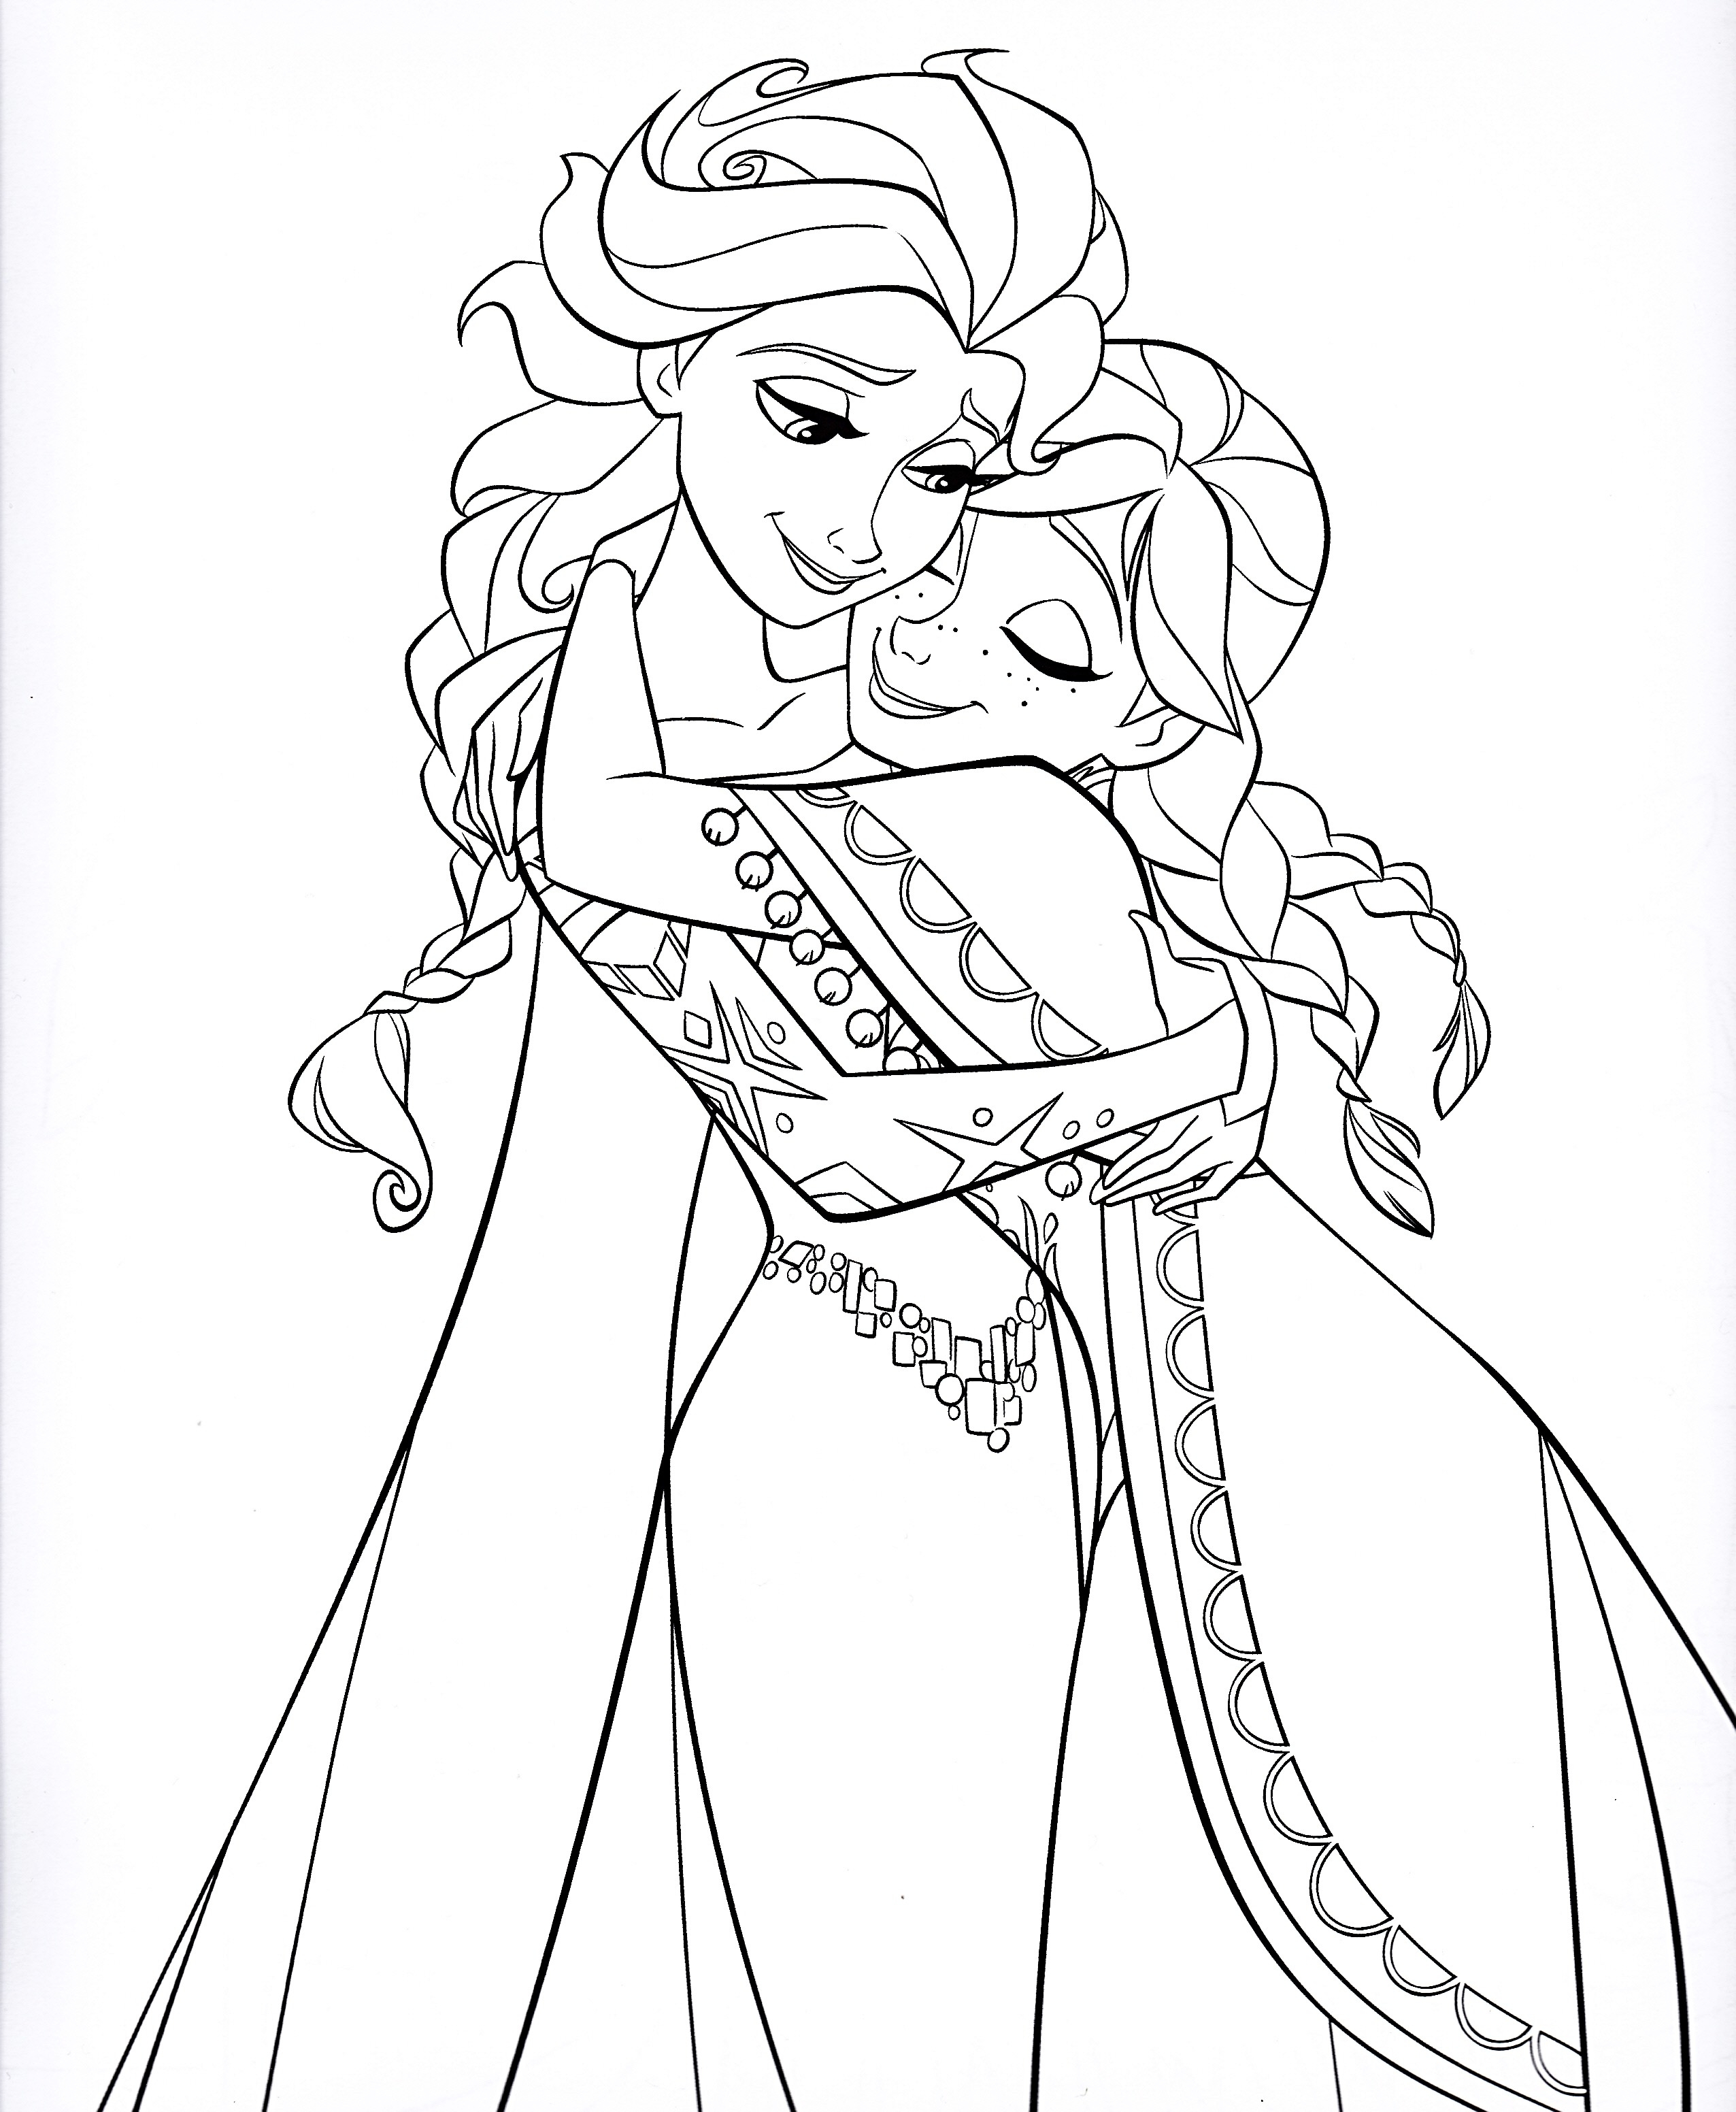 Disney Frozen Coloring Pages For Girls Elsa Free Inside - Qqa intended for Disney Frozen Coloring Pages For Girls Elsa 29421